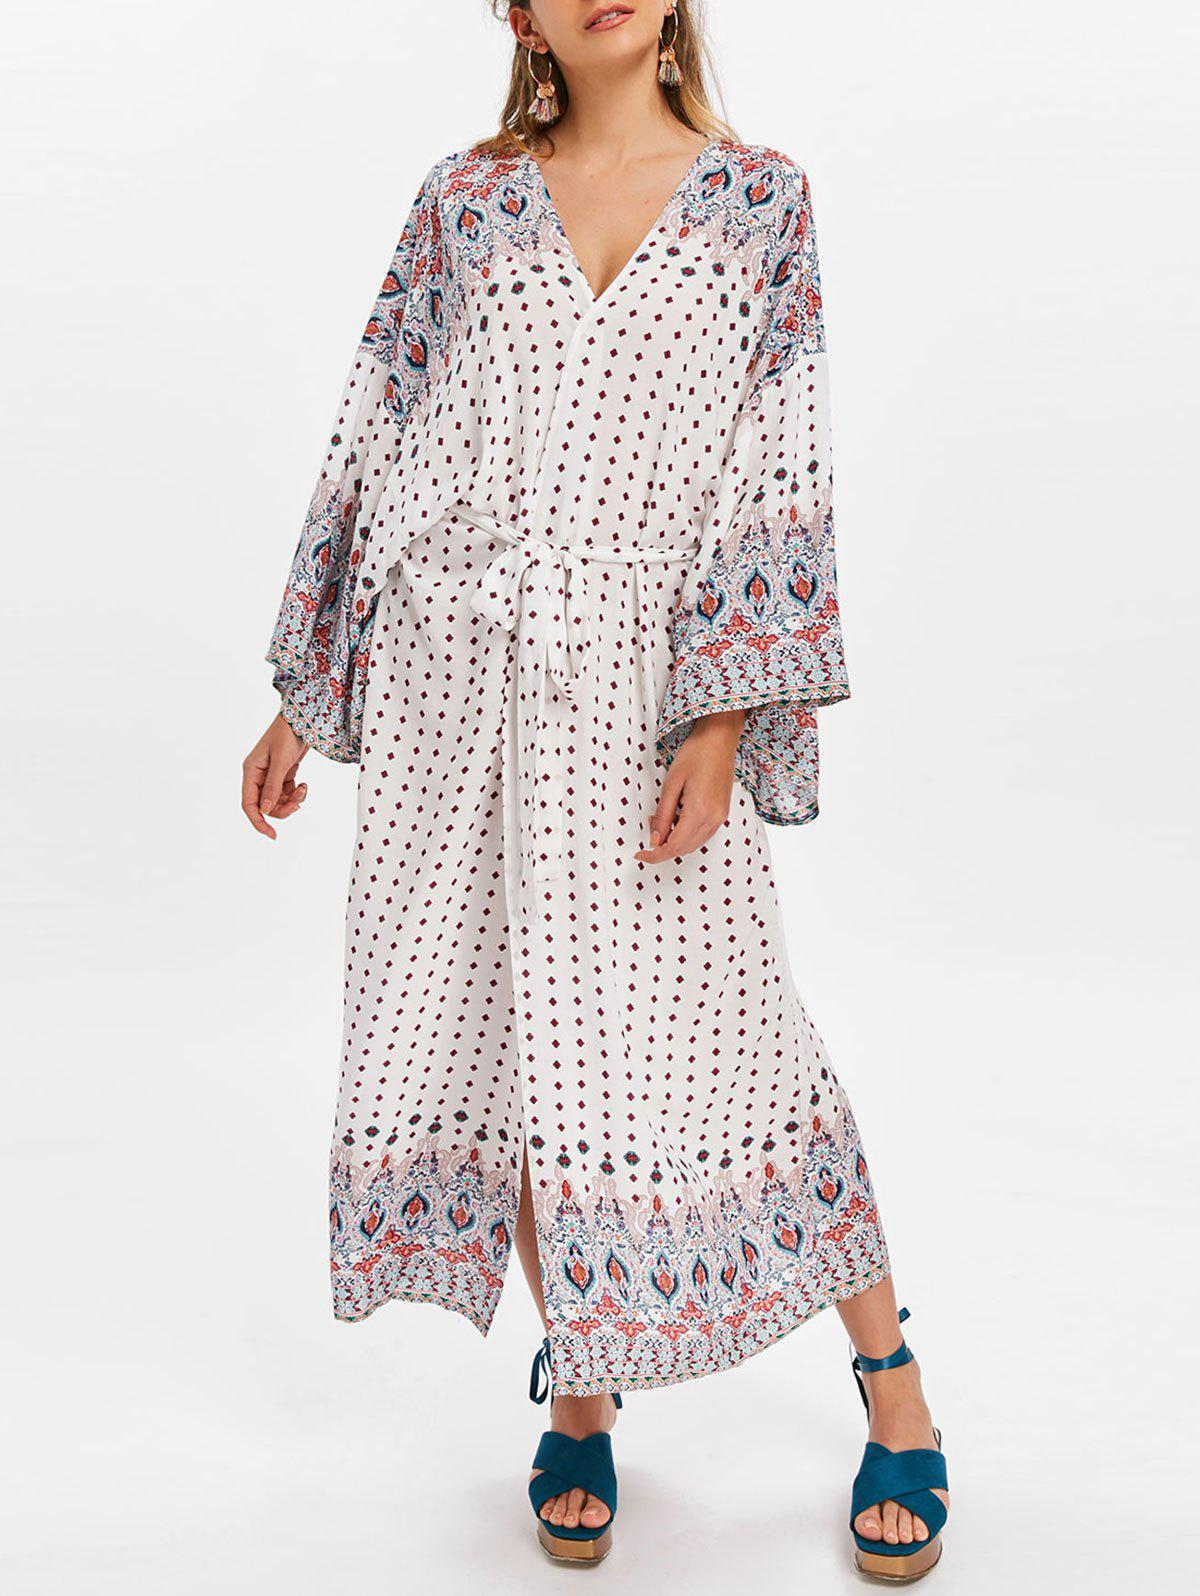 Fancy Polka Dot Cover Up Dress with Waistbelt